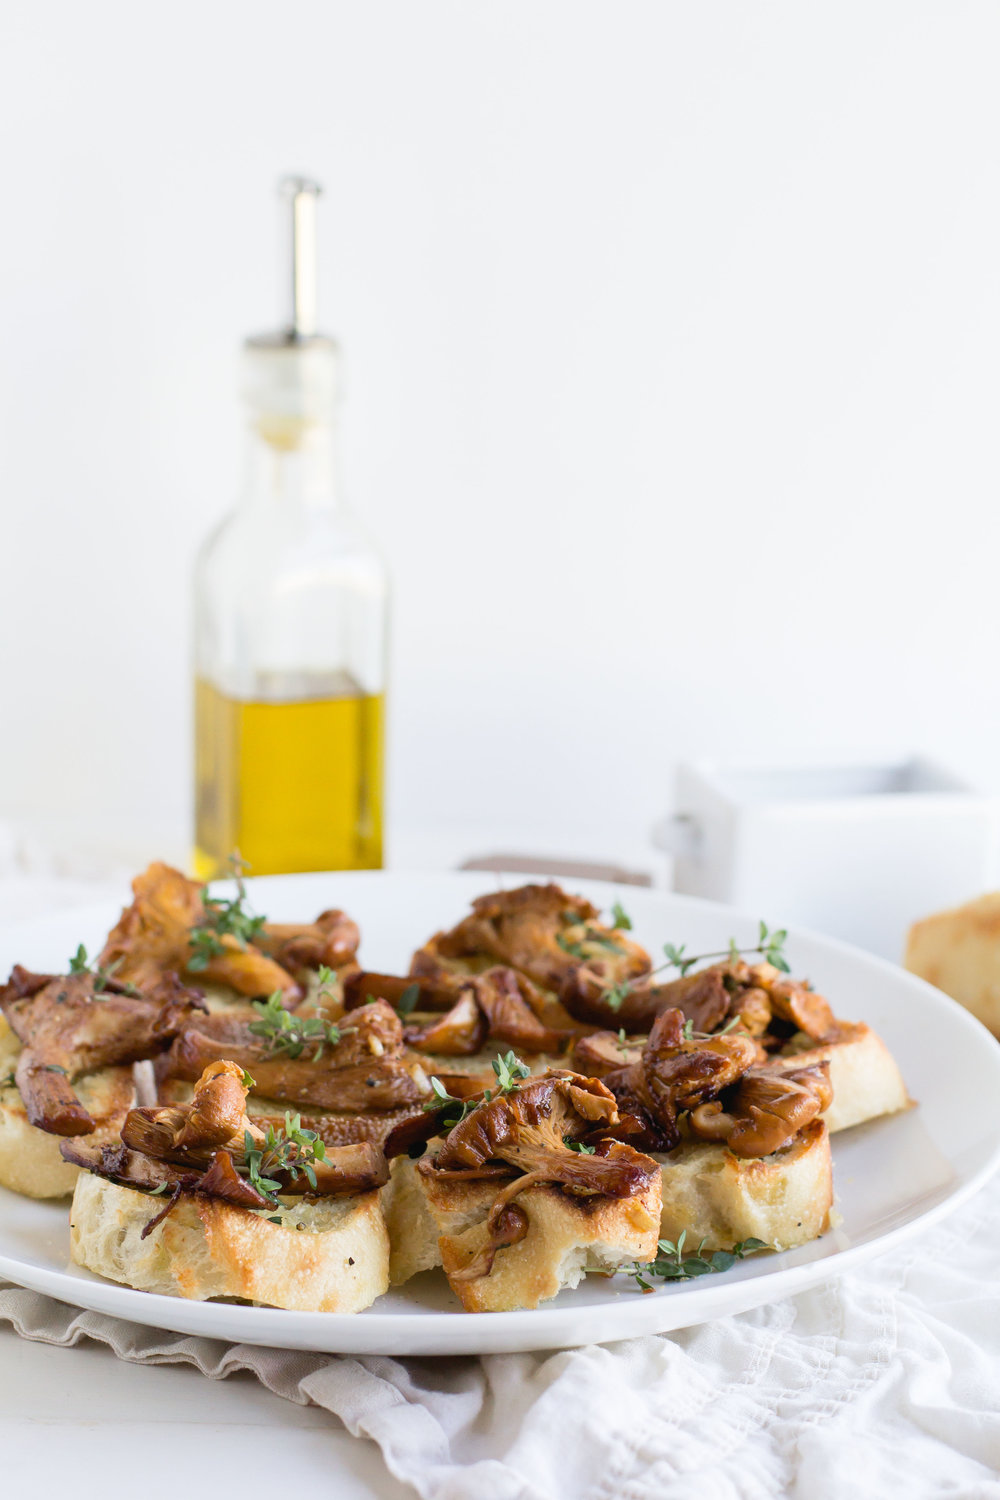 Crostini with Garlic Sauteed Chanterelles